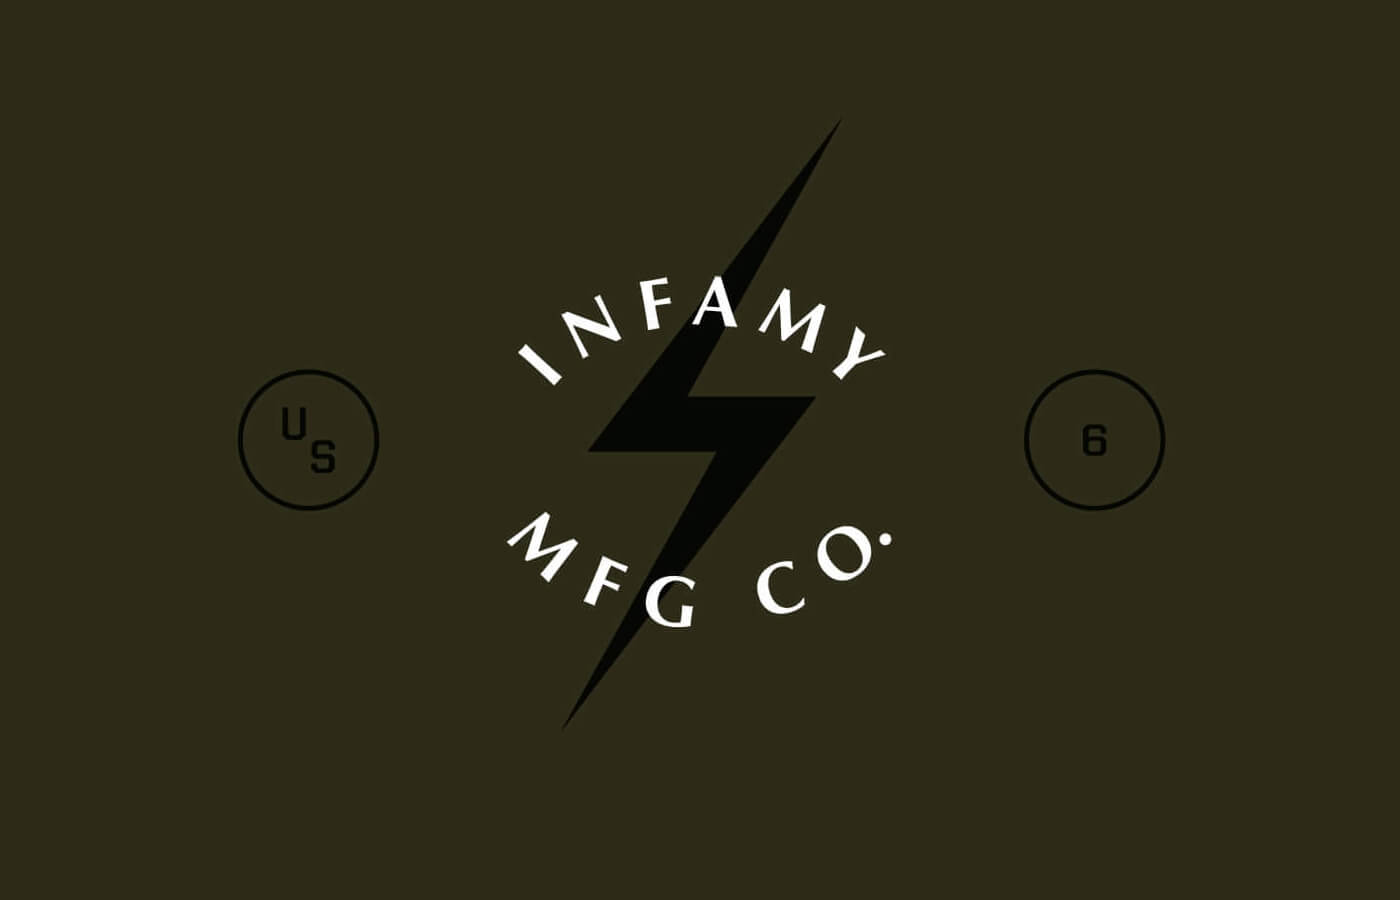 Infamy Mfg. Co.